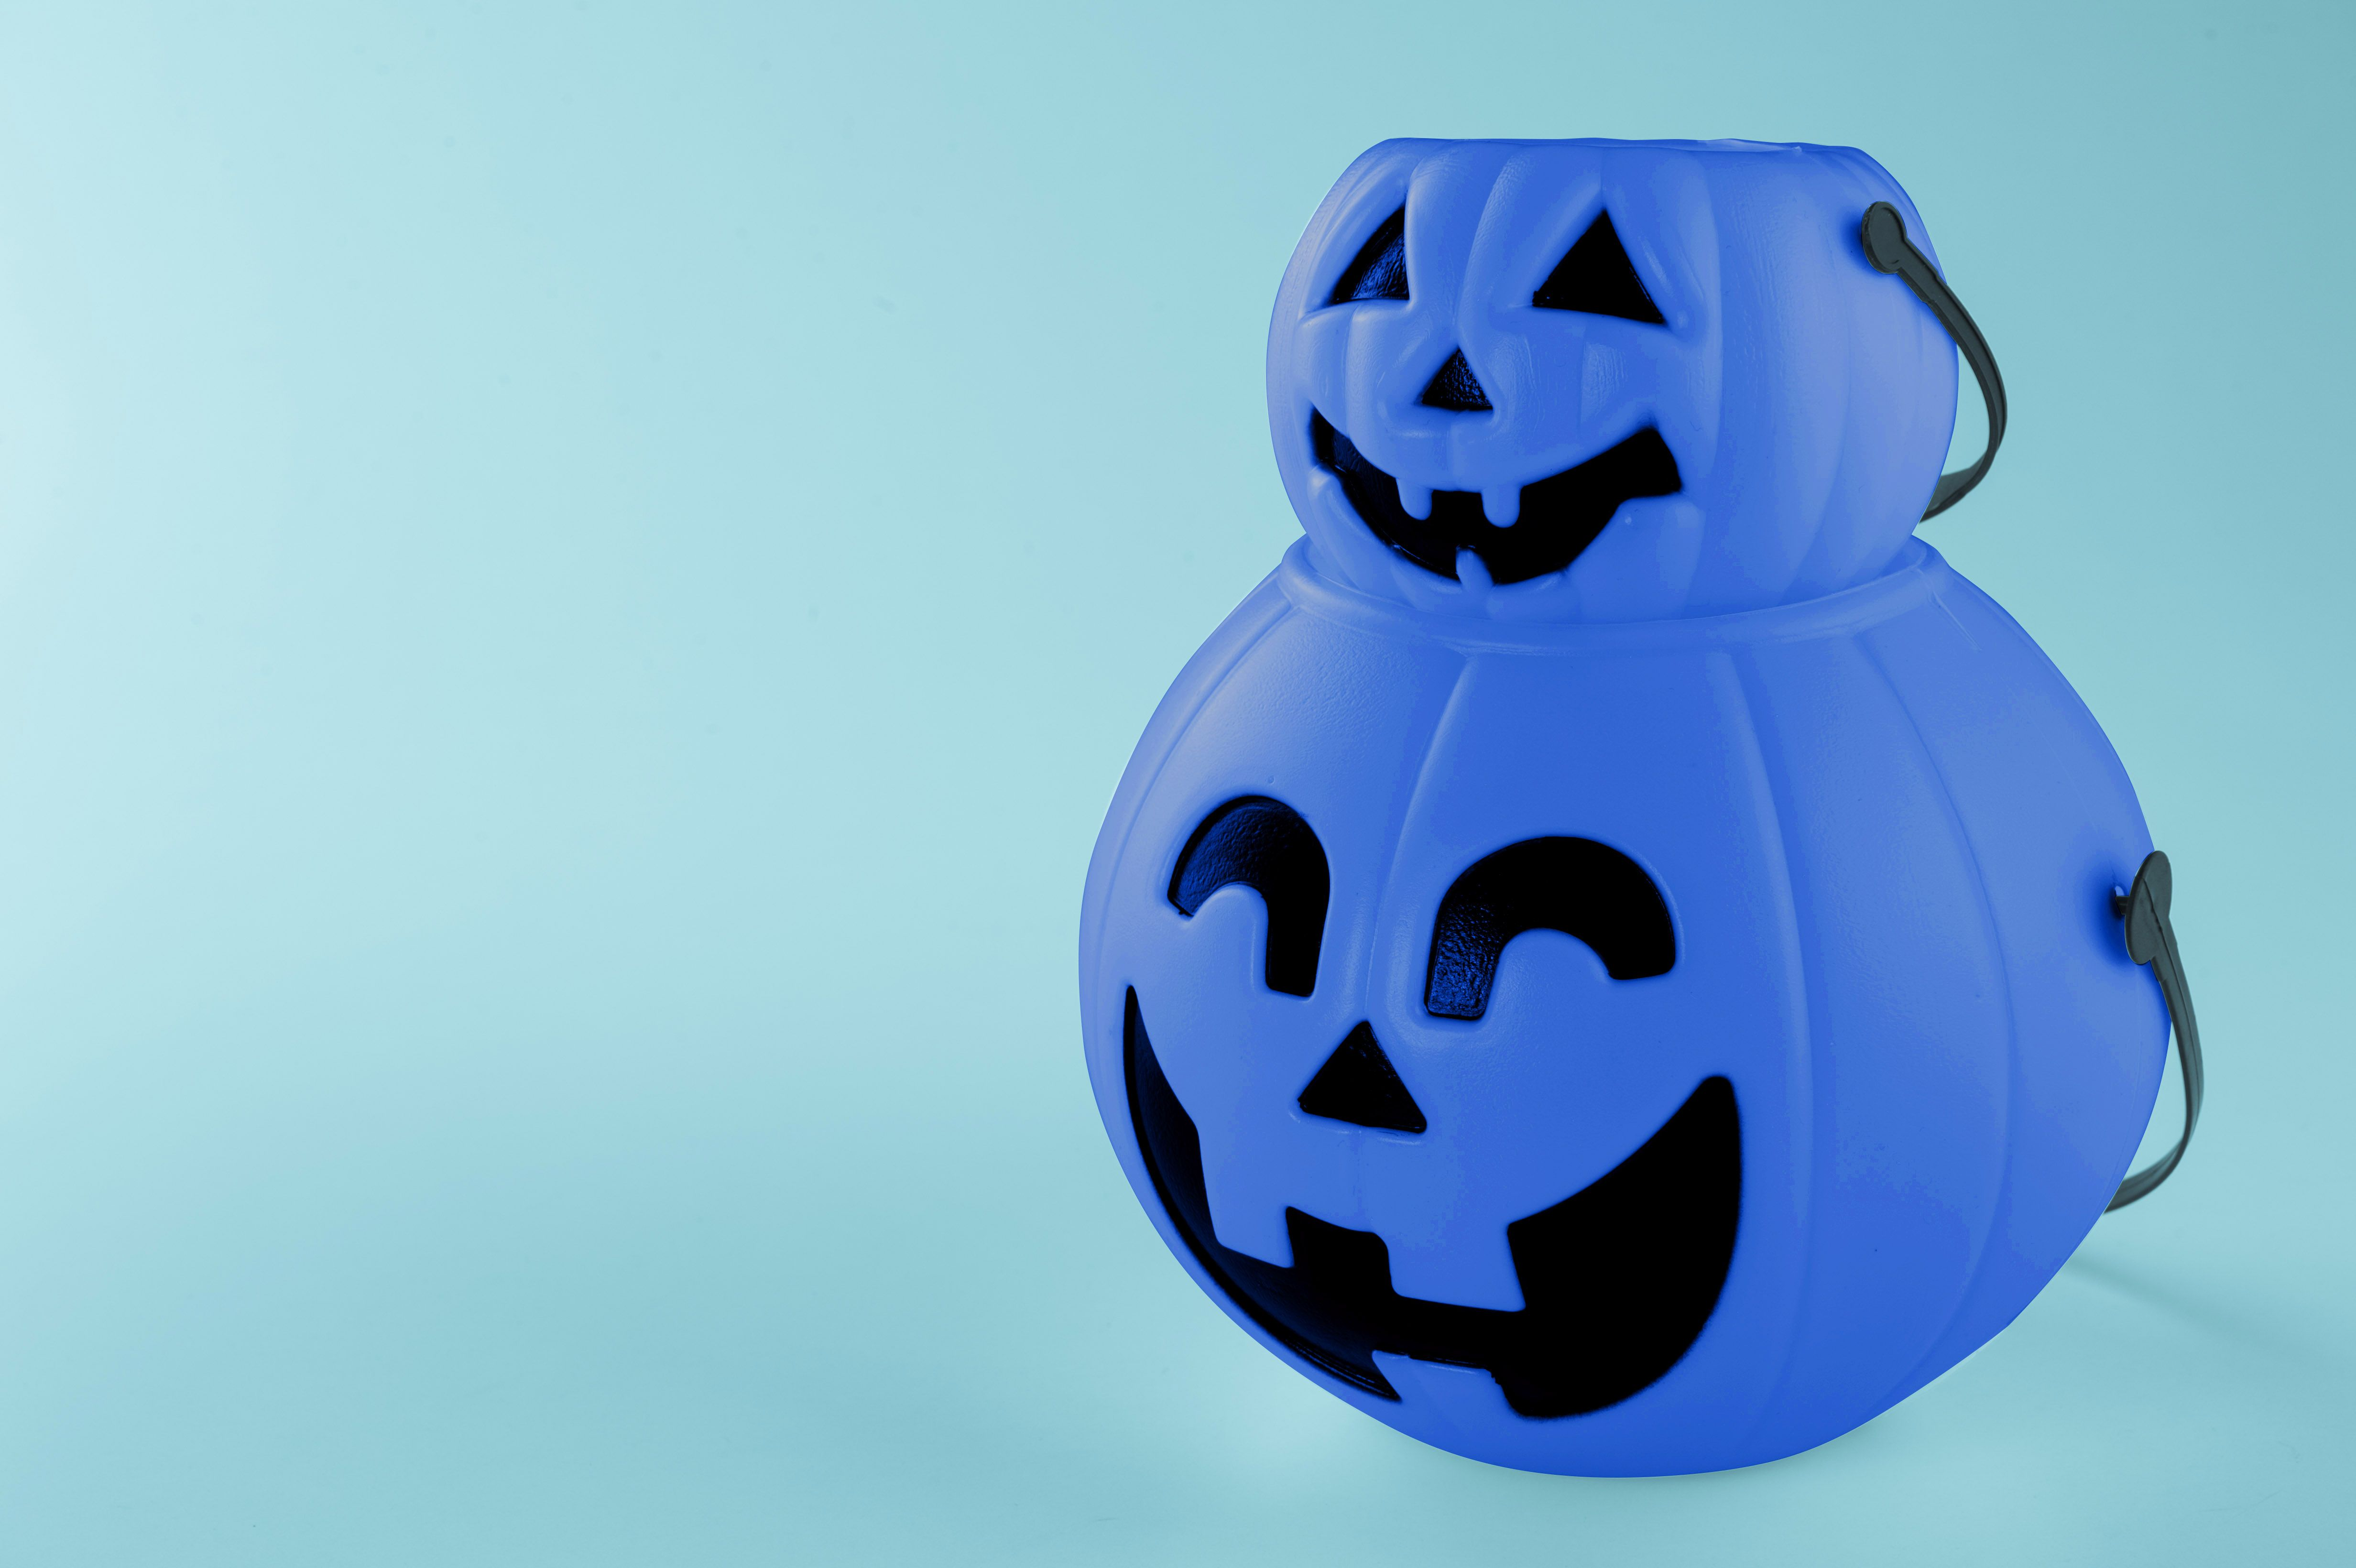 Blue Halloween Buckets Have Become the Unofficial Autism Symbol for Trick-or-Treating